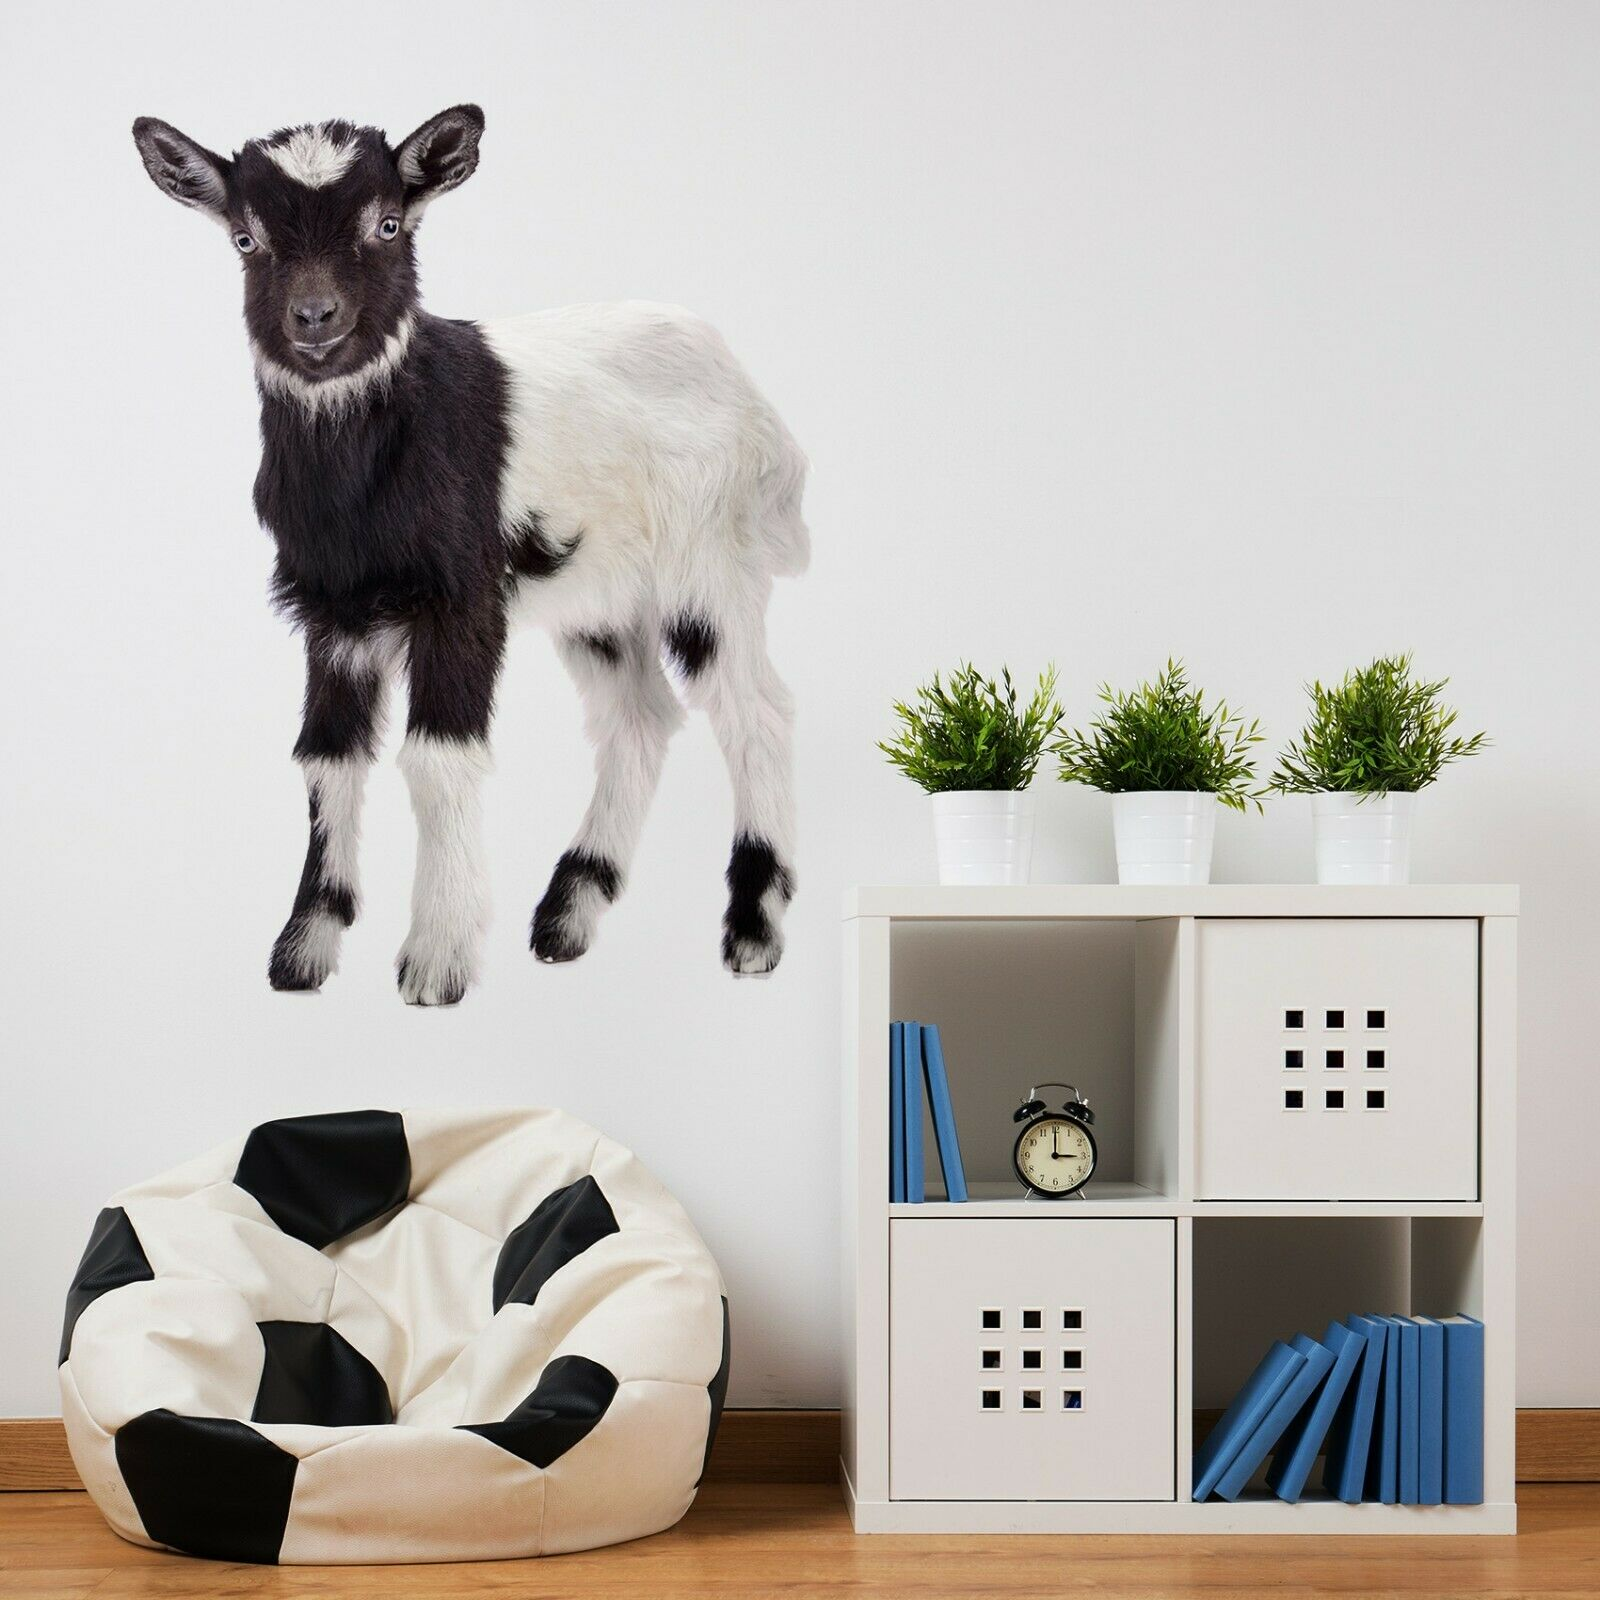 3D Sheep O123 Animal Wallpaper Mural Poster Wall Stickers Decal Ange